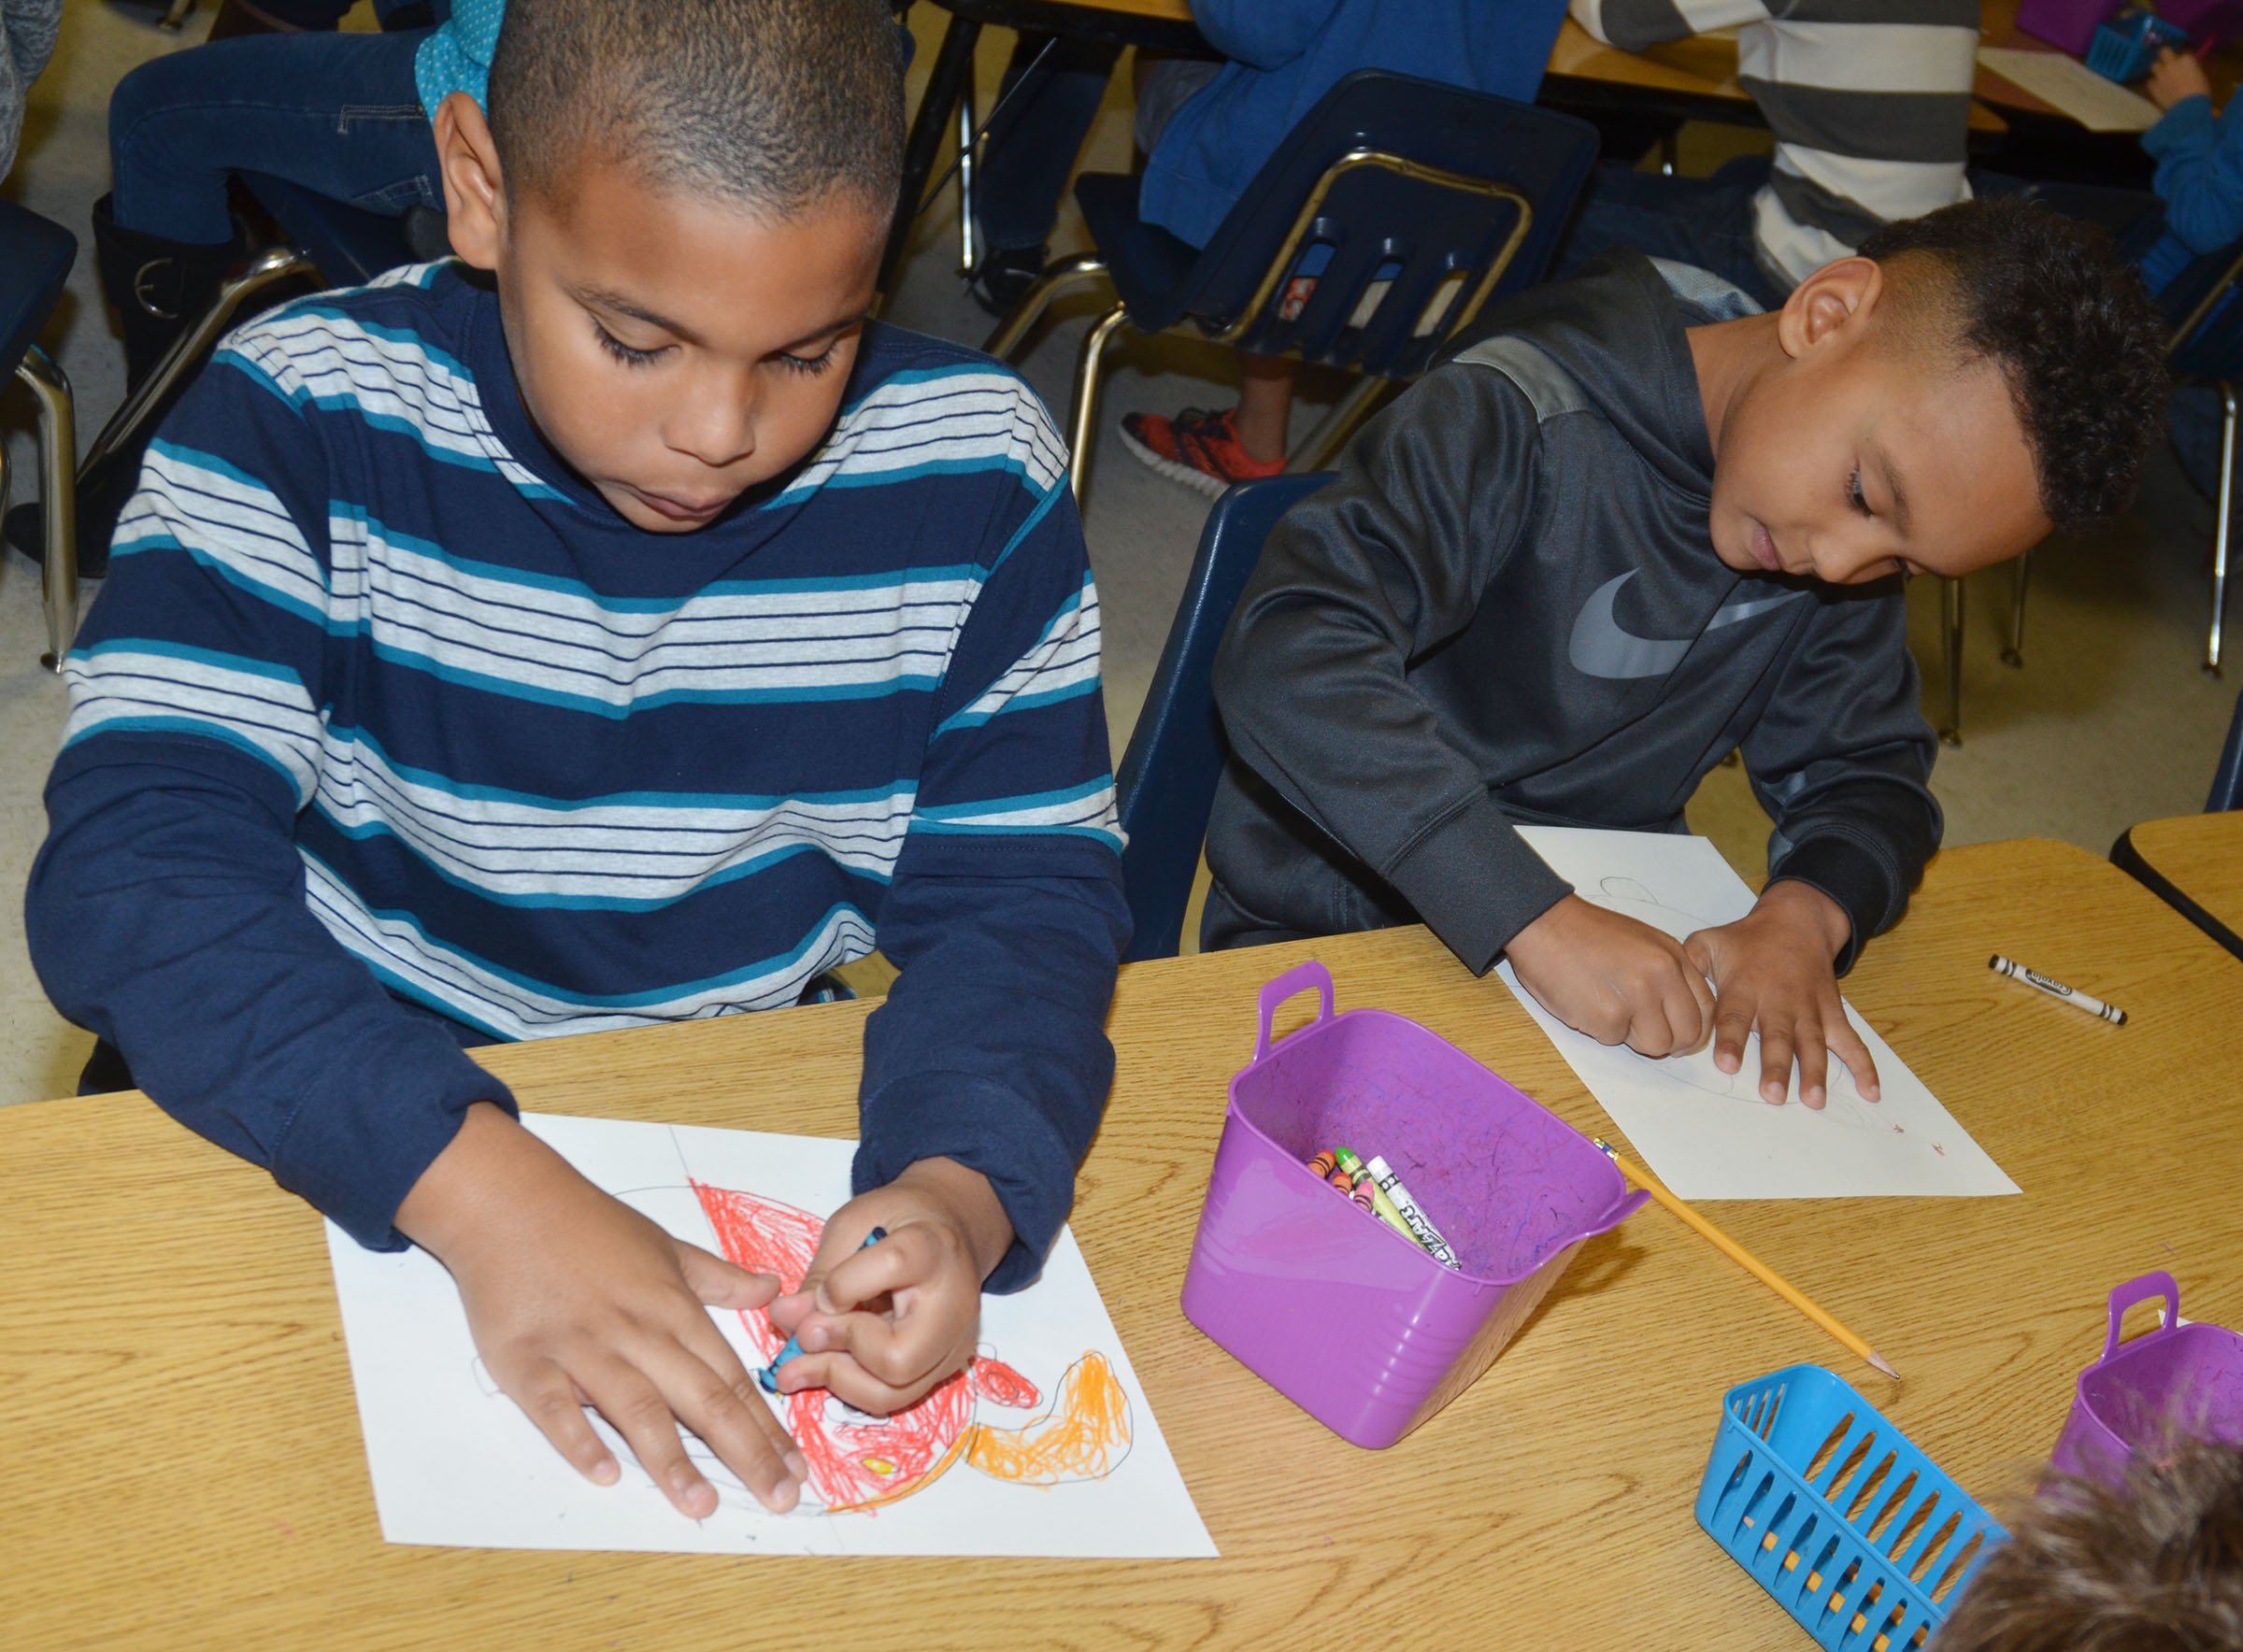 CES second-graders Zaemar Hoskins, at left, and Maddox Hawkins color their warm and cool color faces.